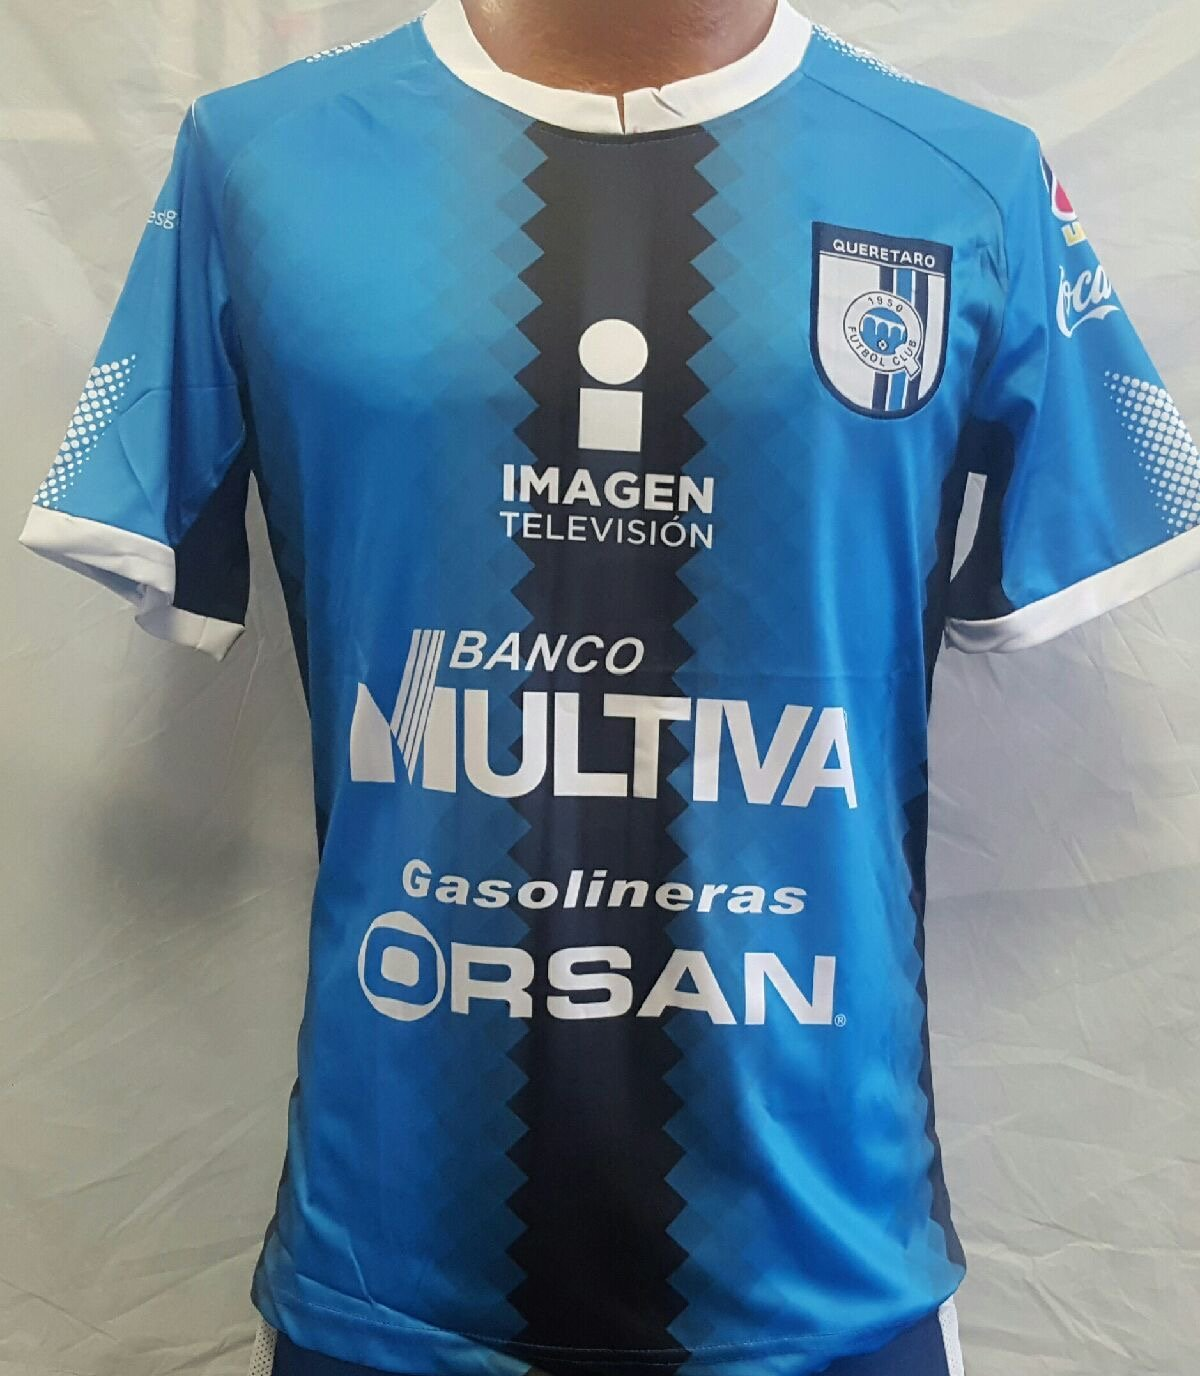 50b315f9c Get Quotations · New! Club Deportivo Queretaro FC Gallos Home Generica  Jersey Size Small